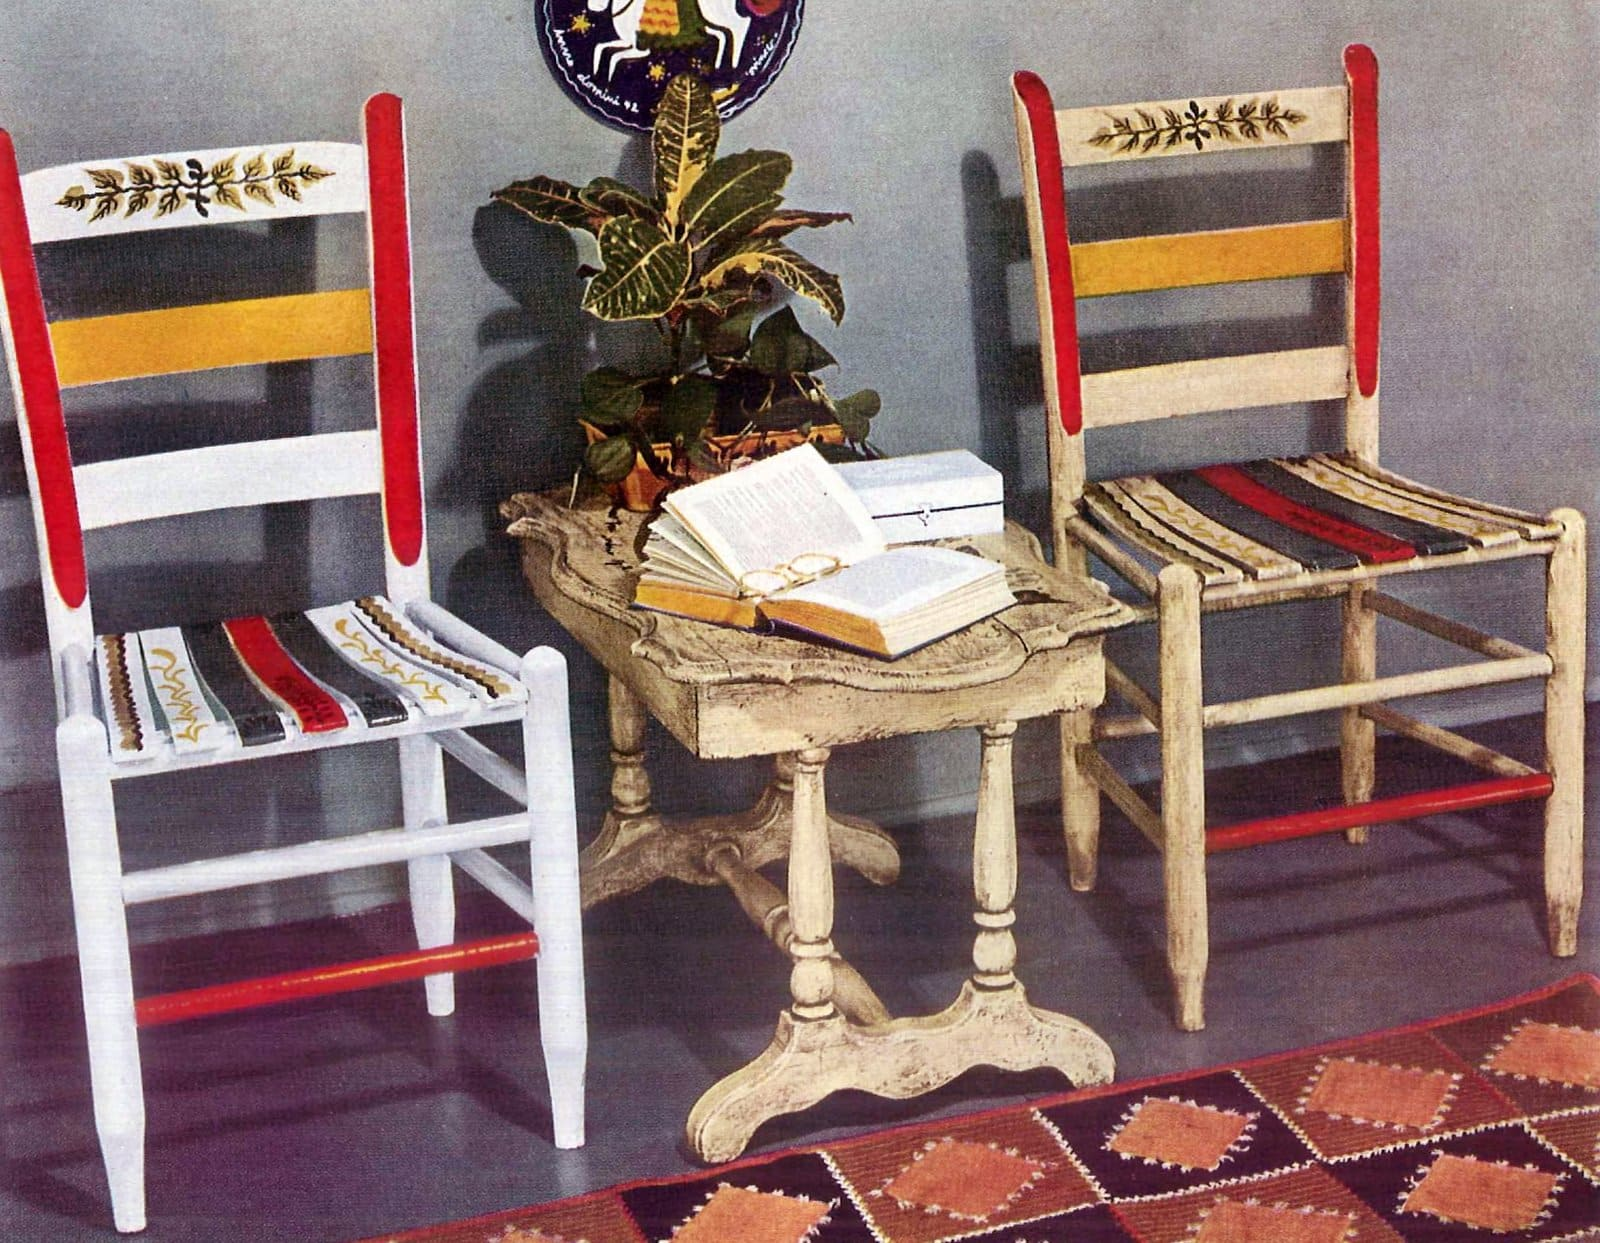 To help you decide Two chairs, one with an antiqued finish